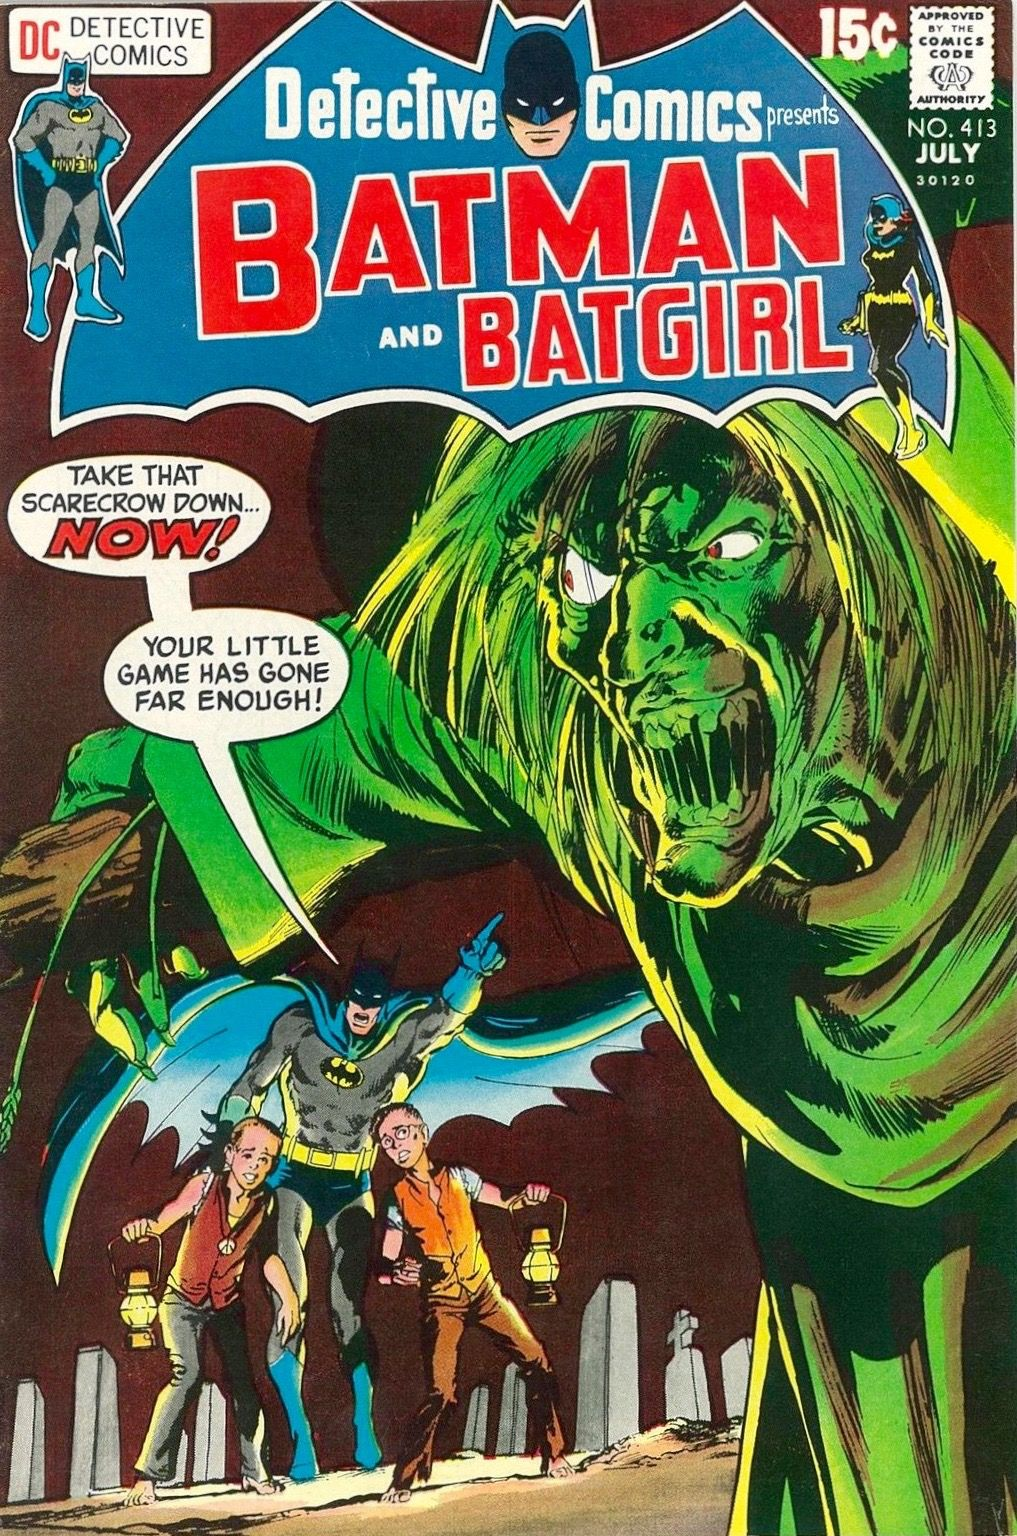 Detective comics 413 1971 cover art the dynamic neal